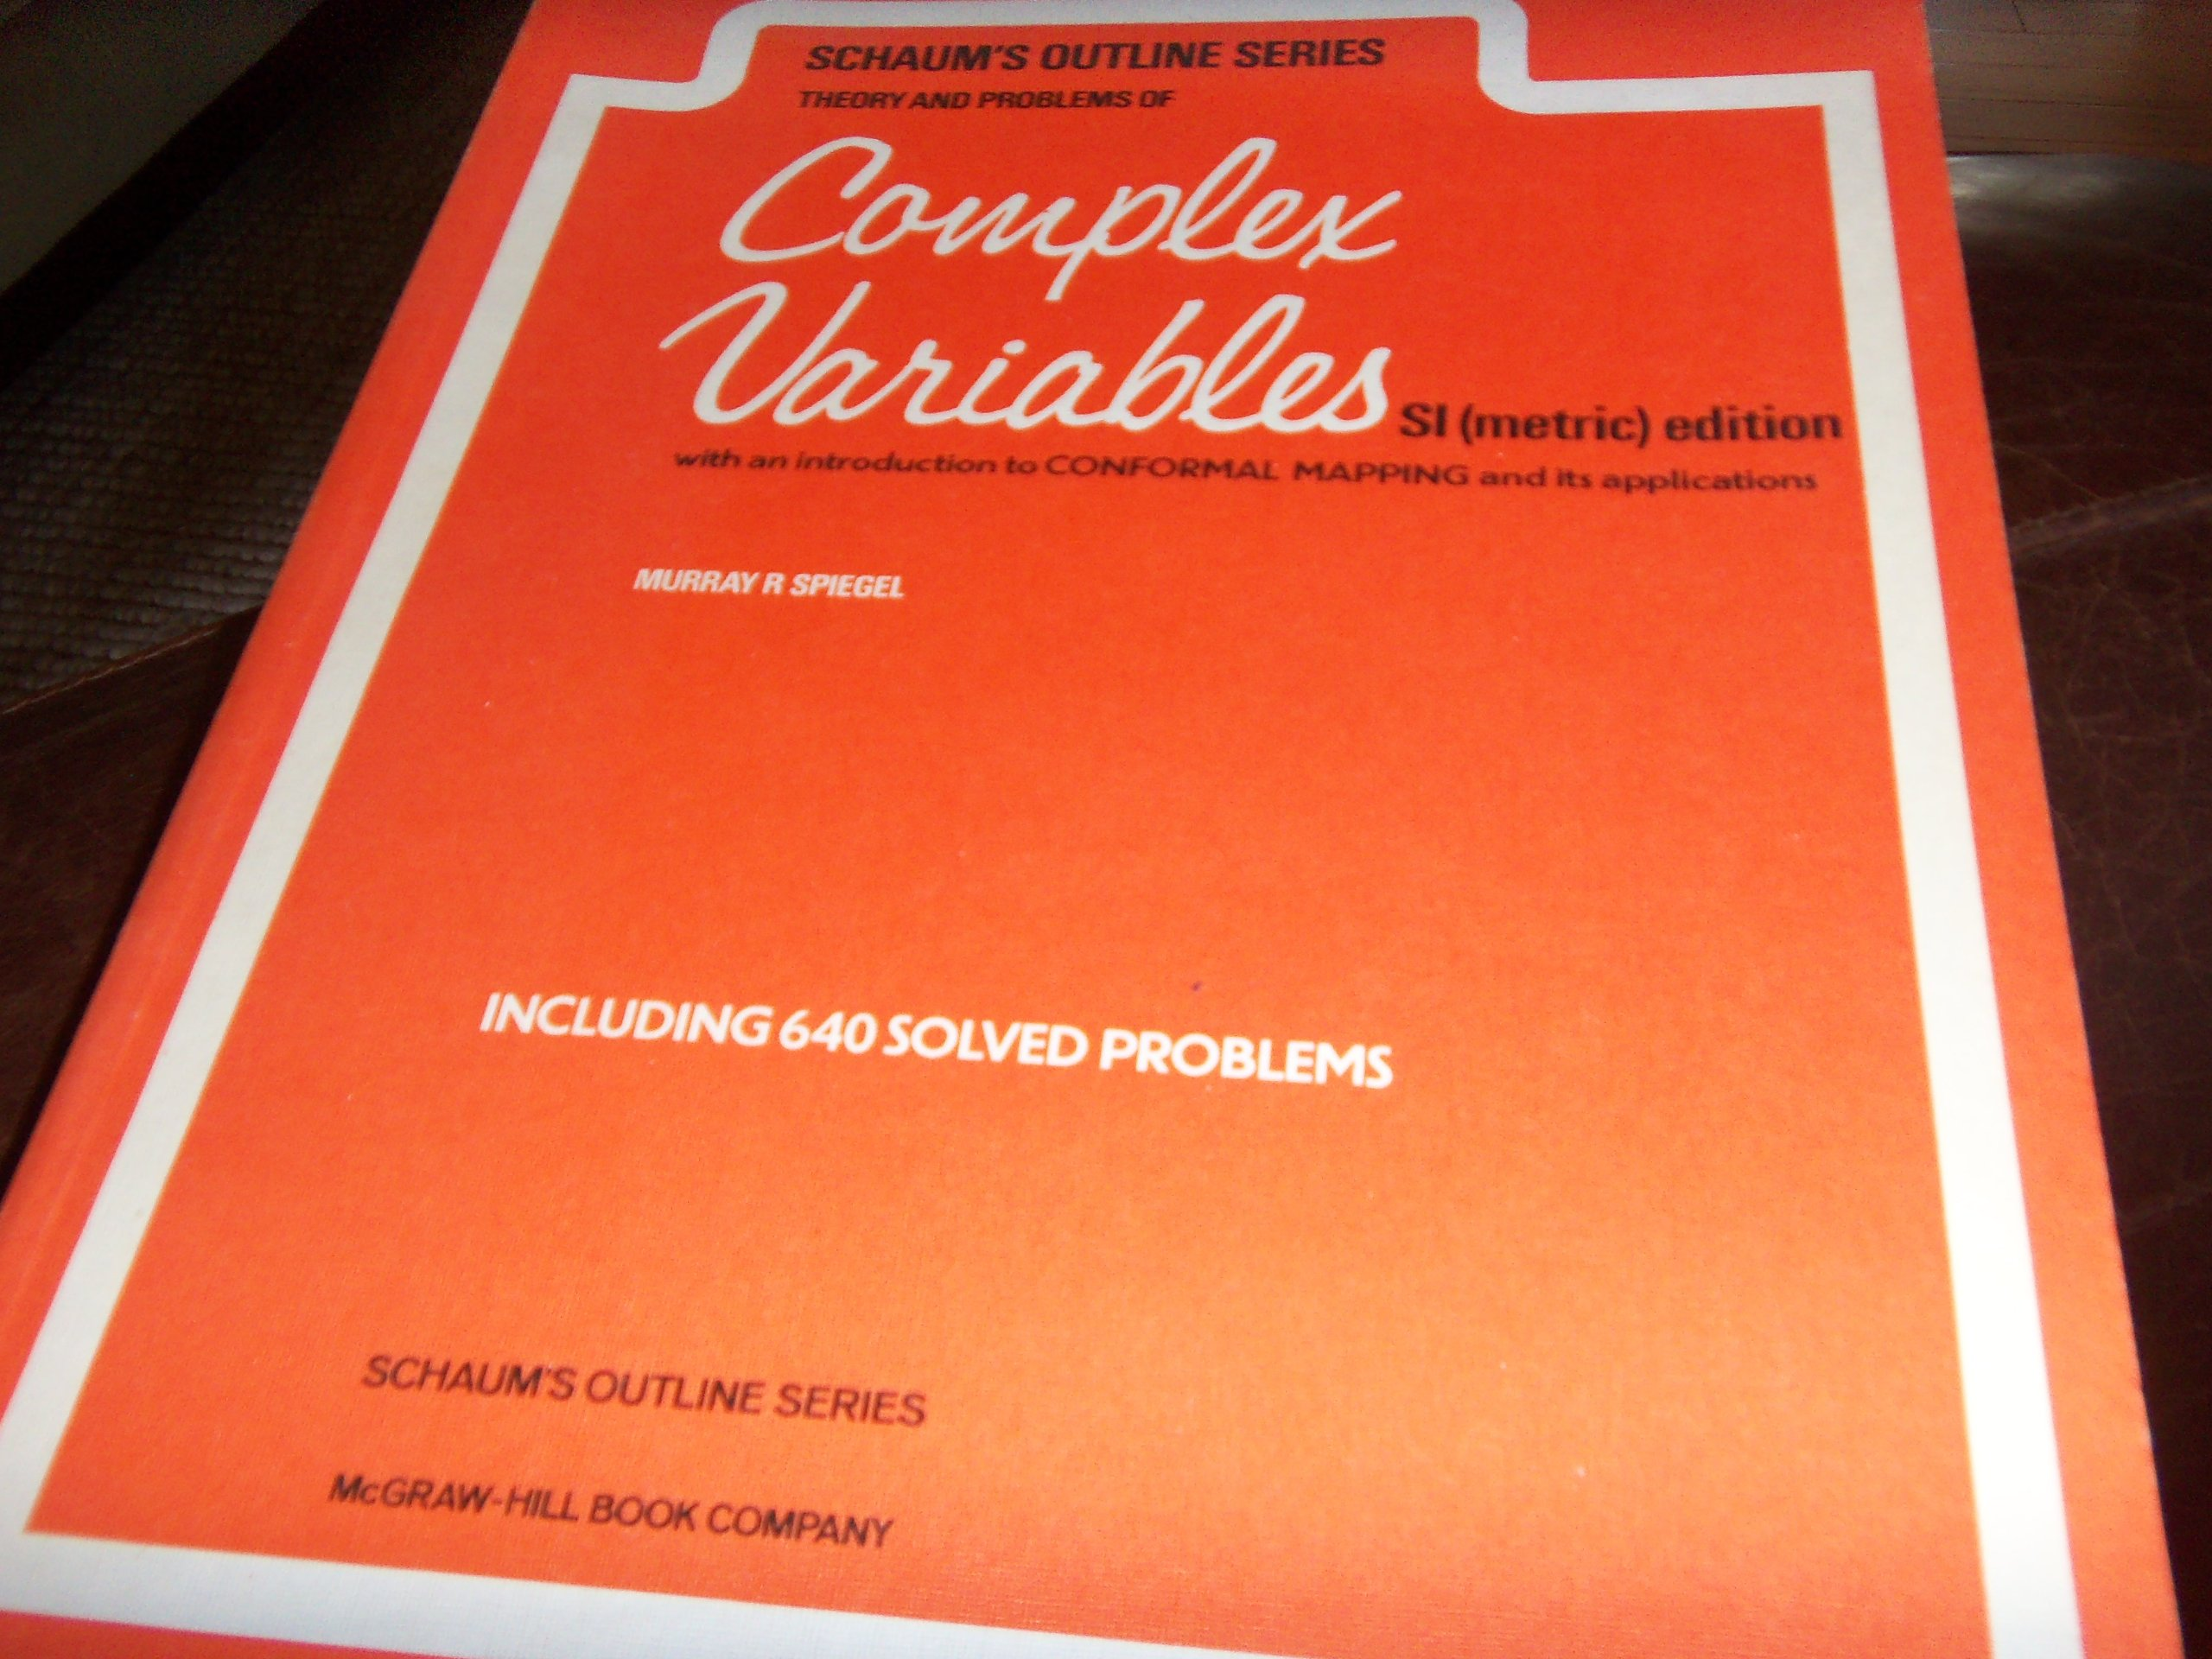 solution of complex variables by spiegel